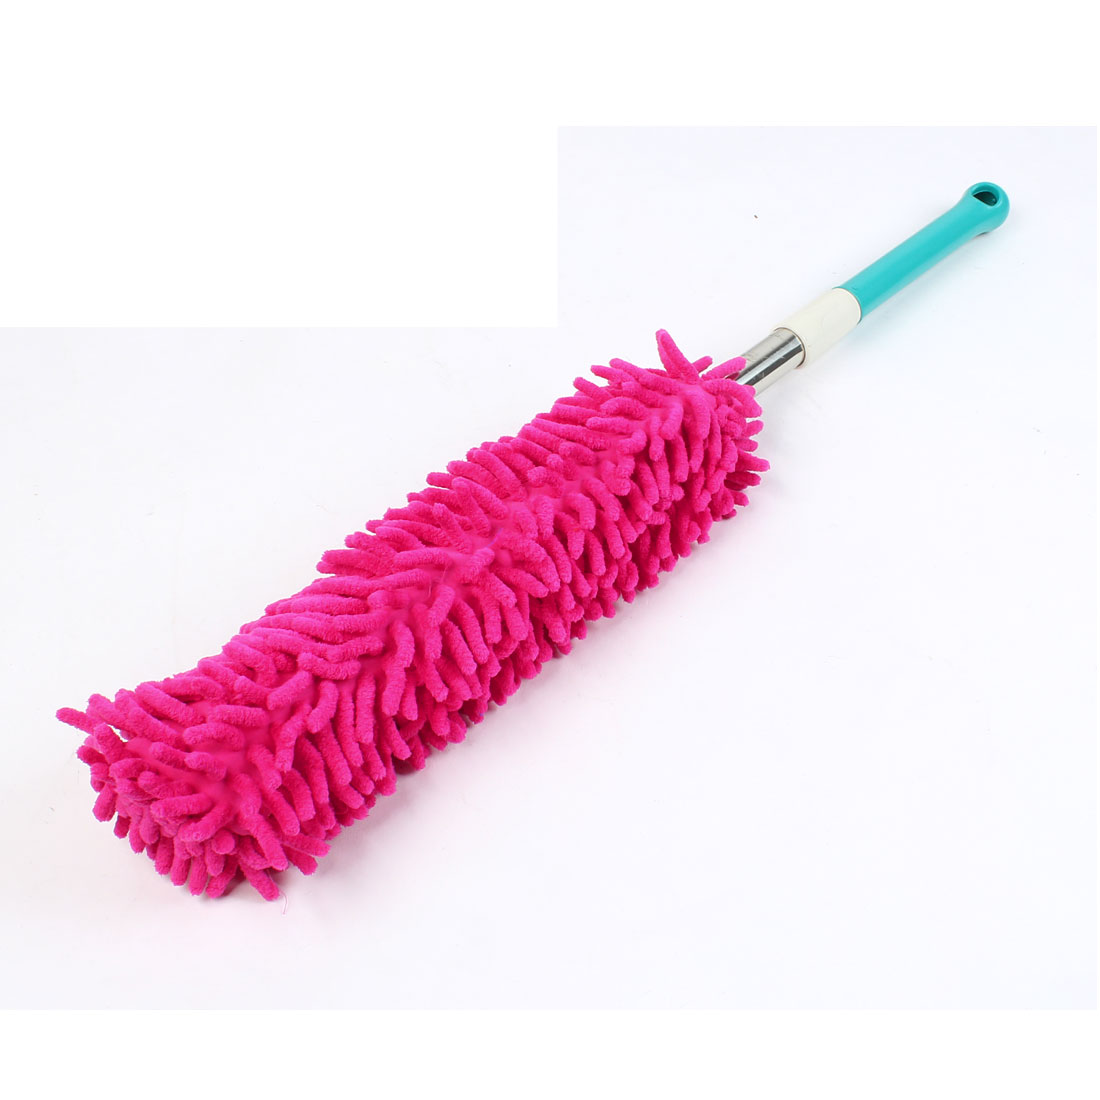 Extendable Nonslip Plastic Grip Microfiber Car Dirt Duster Waxing Brush Fuchsia